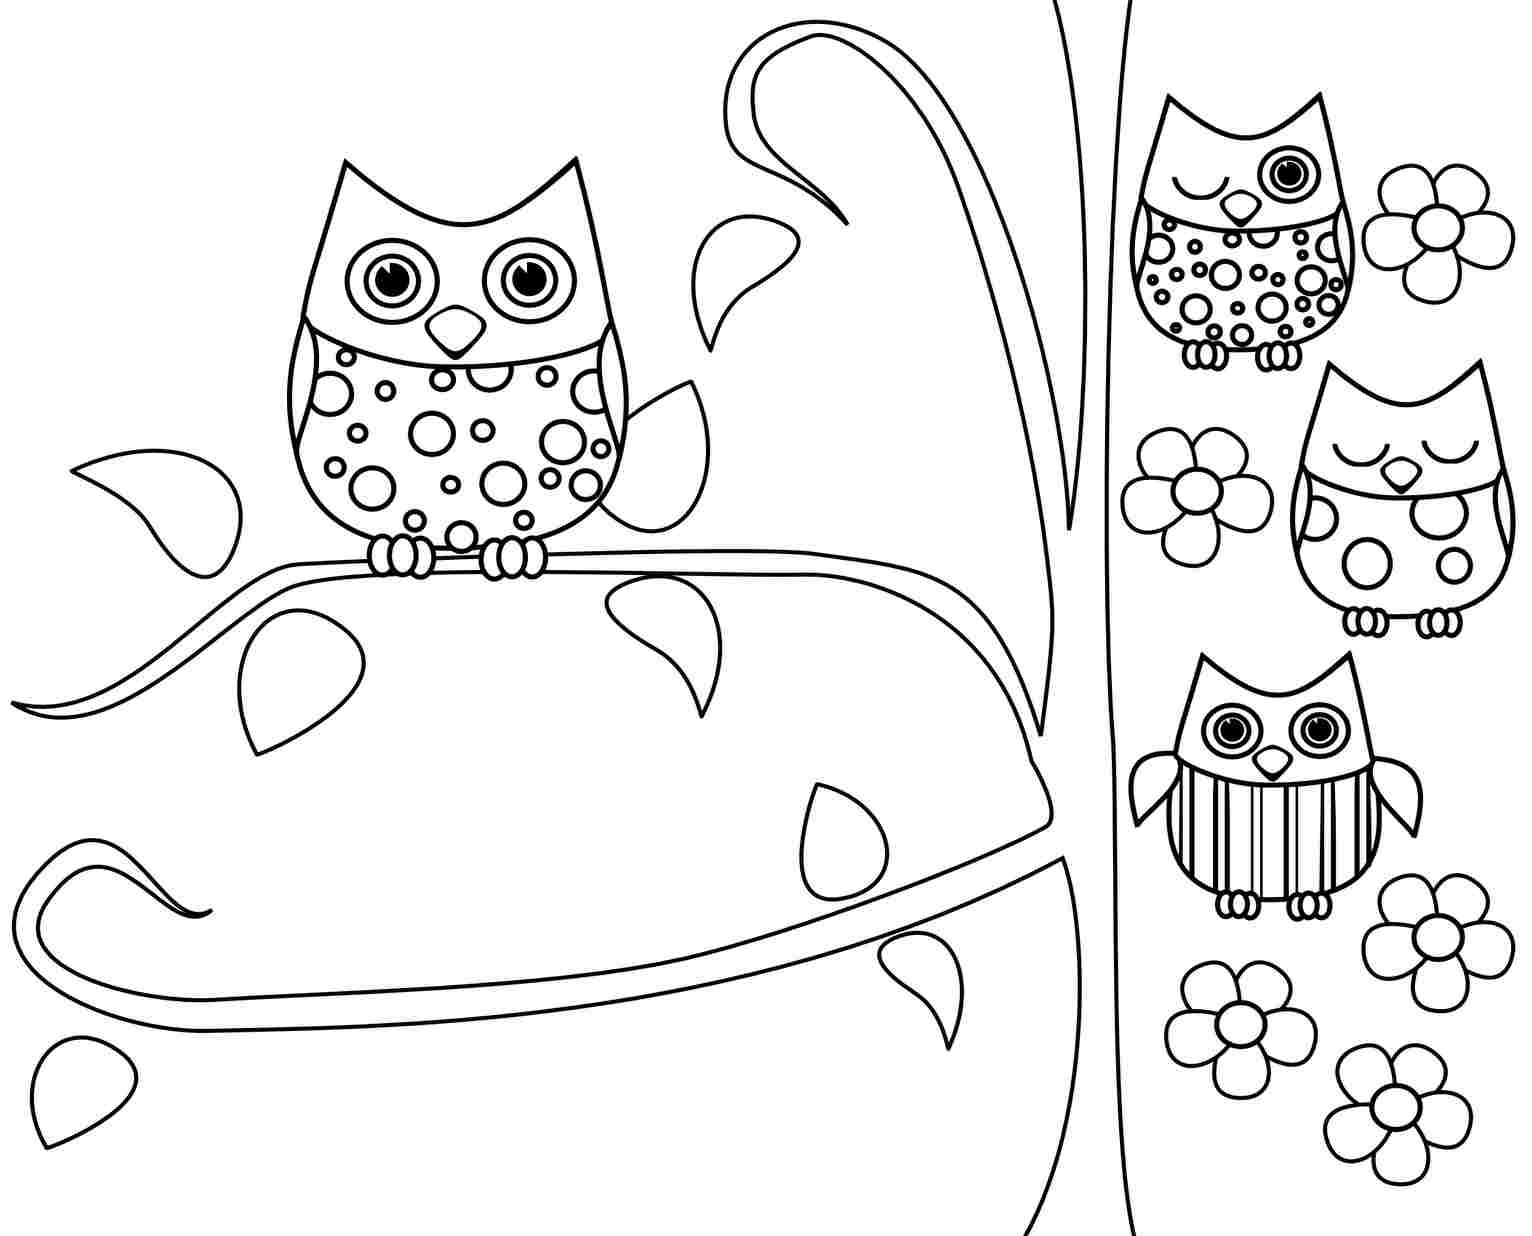 Owl_Coloring_Pages_Printable_Free_01